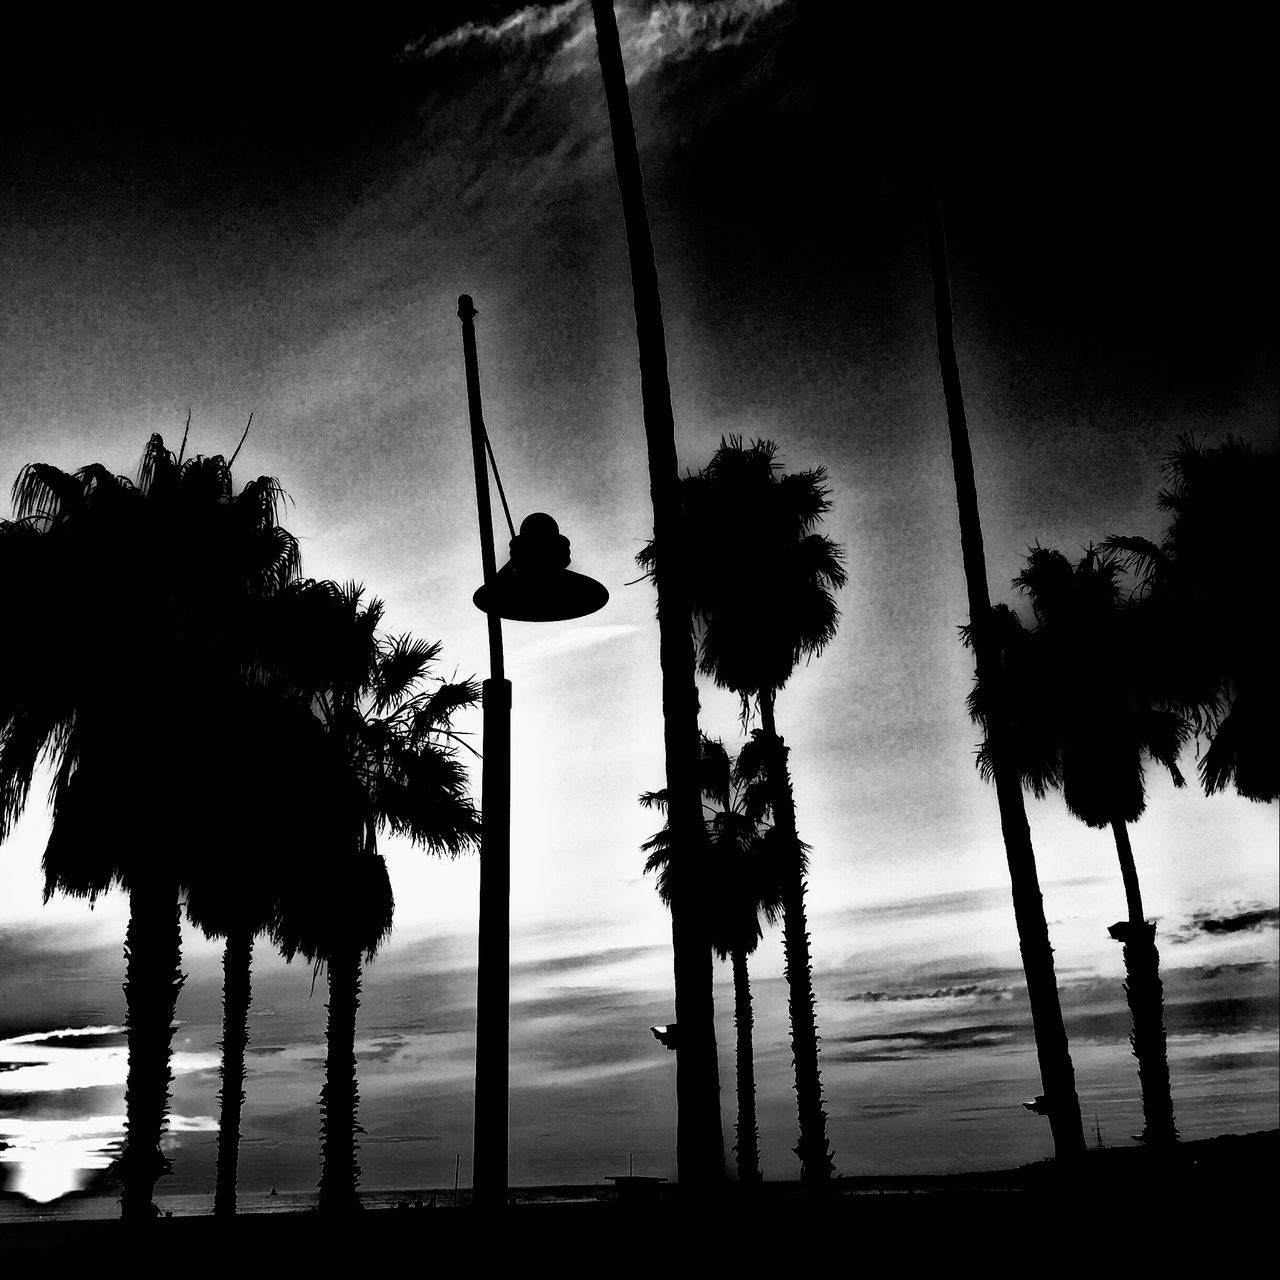 Palm Trees EyeEm Beach Photography Sunset Sunset Silhouettes Streetphotography Taking Photos Venicelife Eyeem Beach Shots Blackandwhite